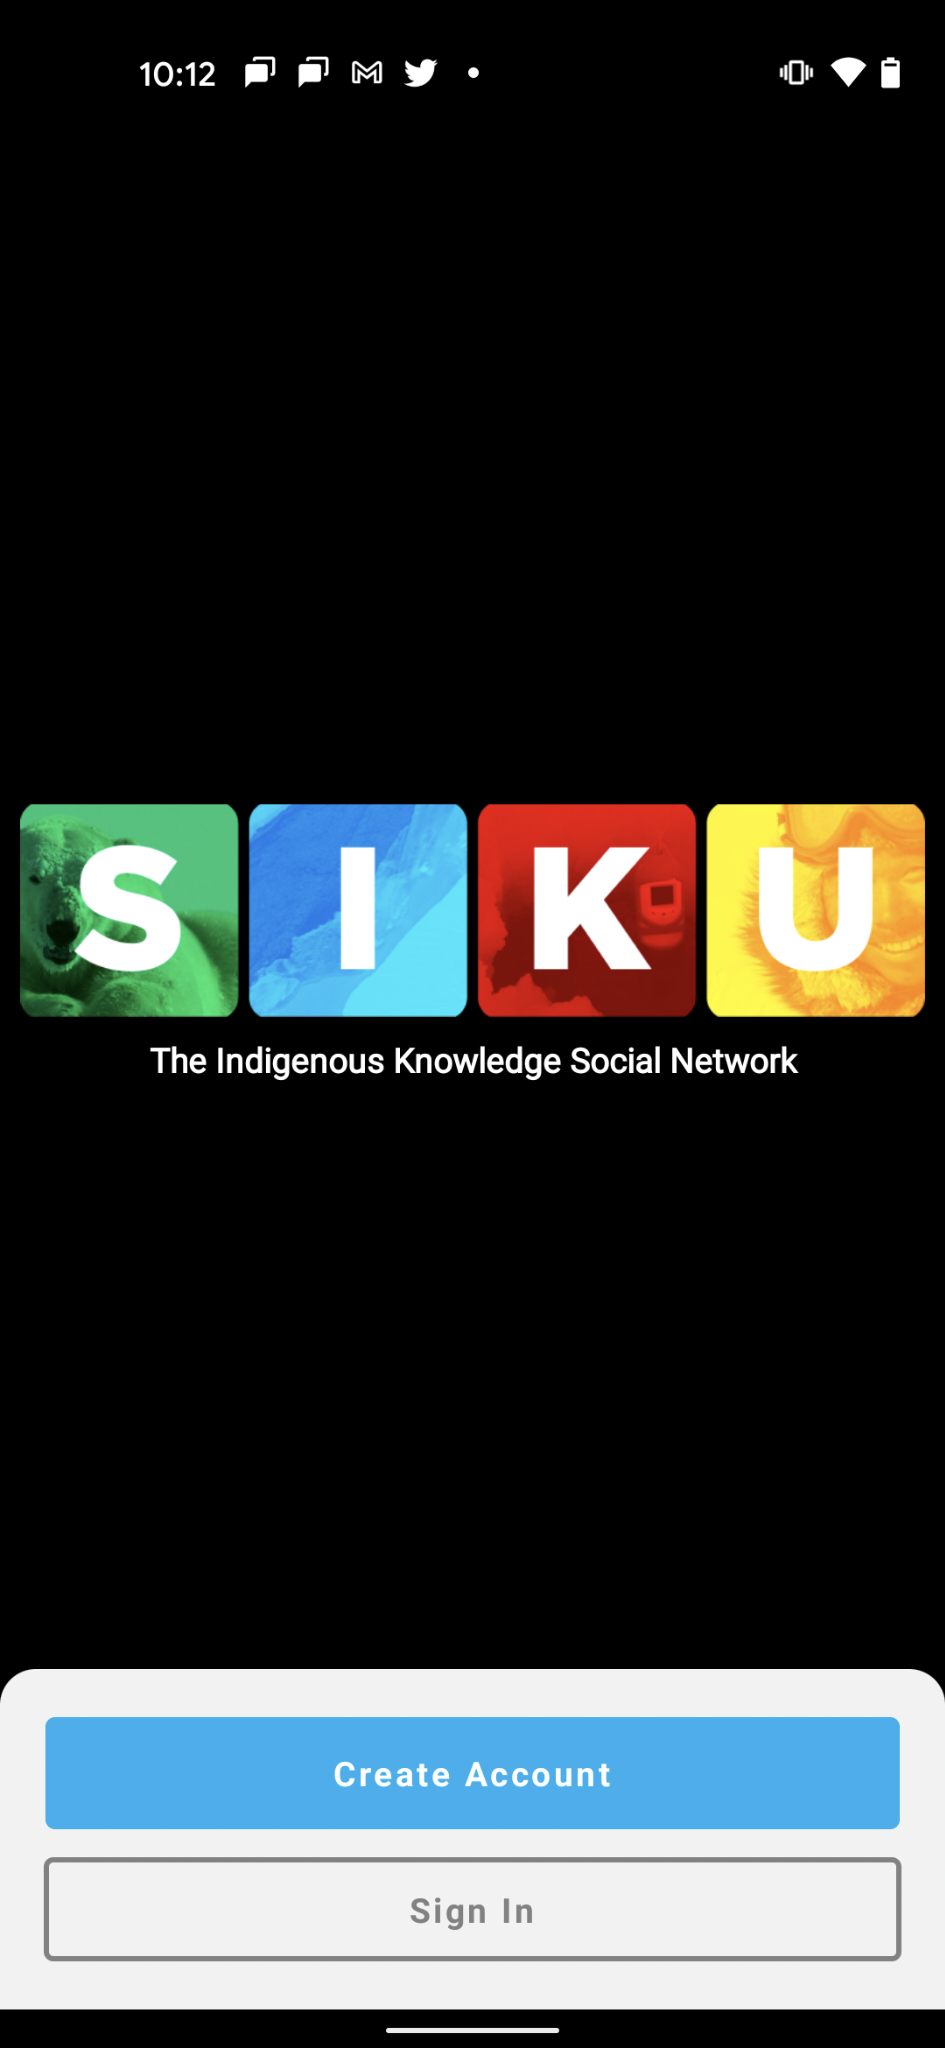 SIKU Splash Screen